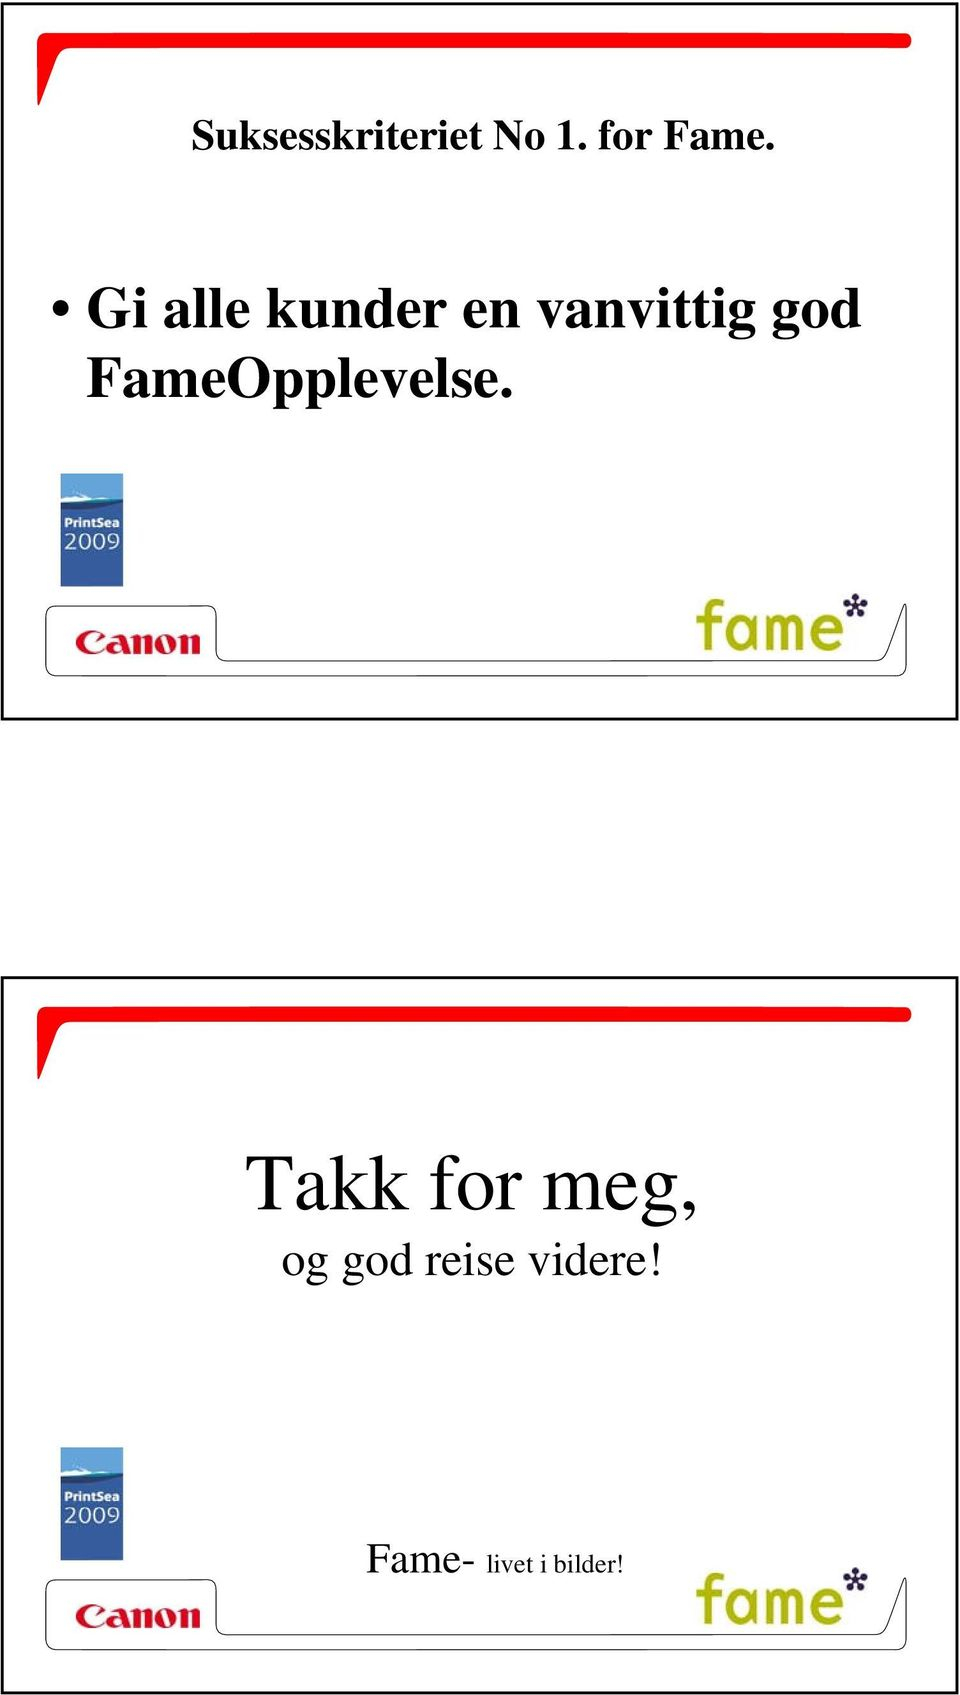 FameOpplevelse.